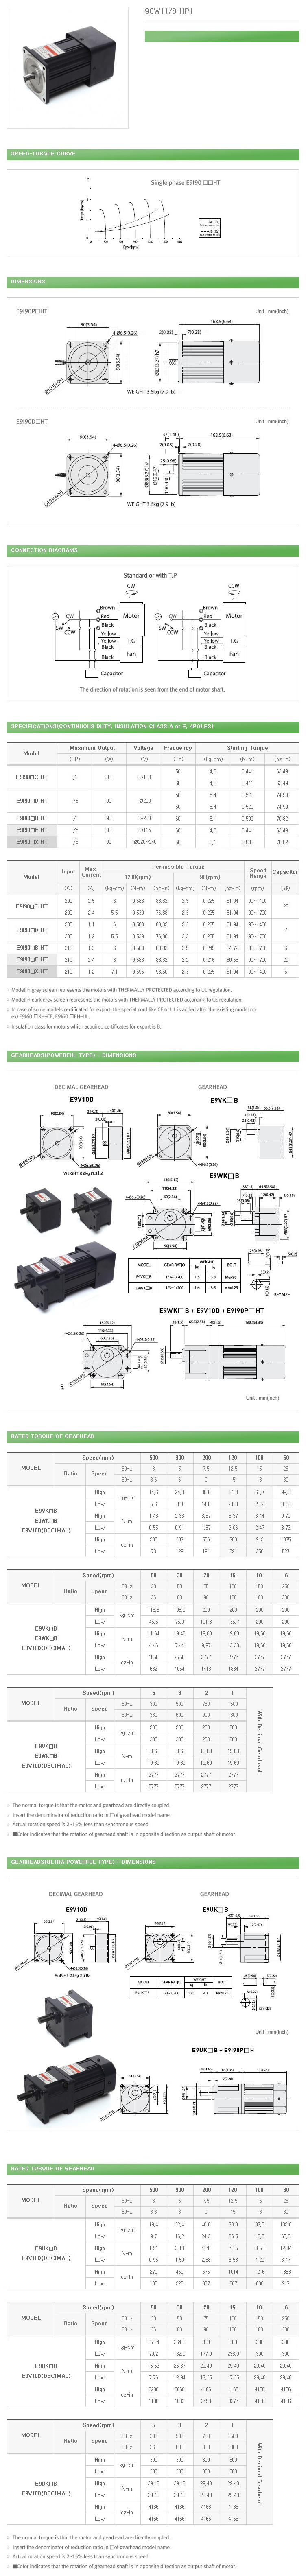 DAEHWA E/M Speed Control Induction Motor (90W, 1/8 HP)